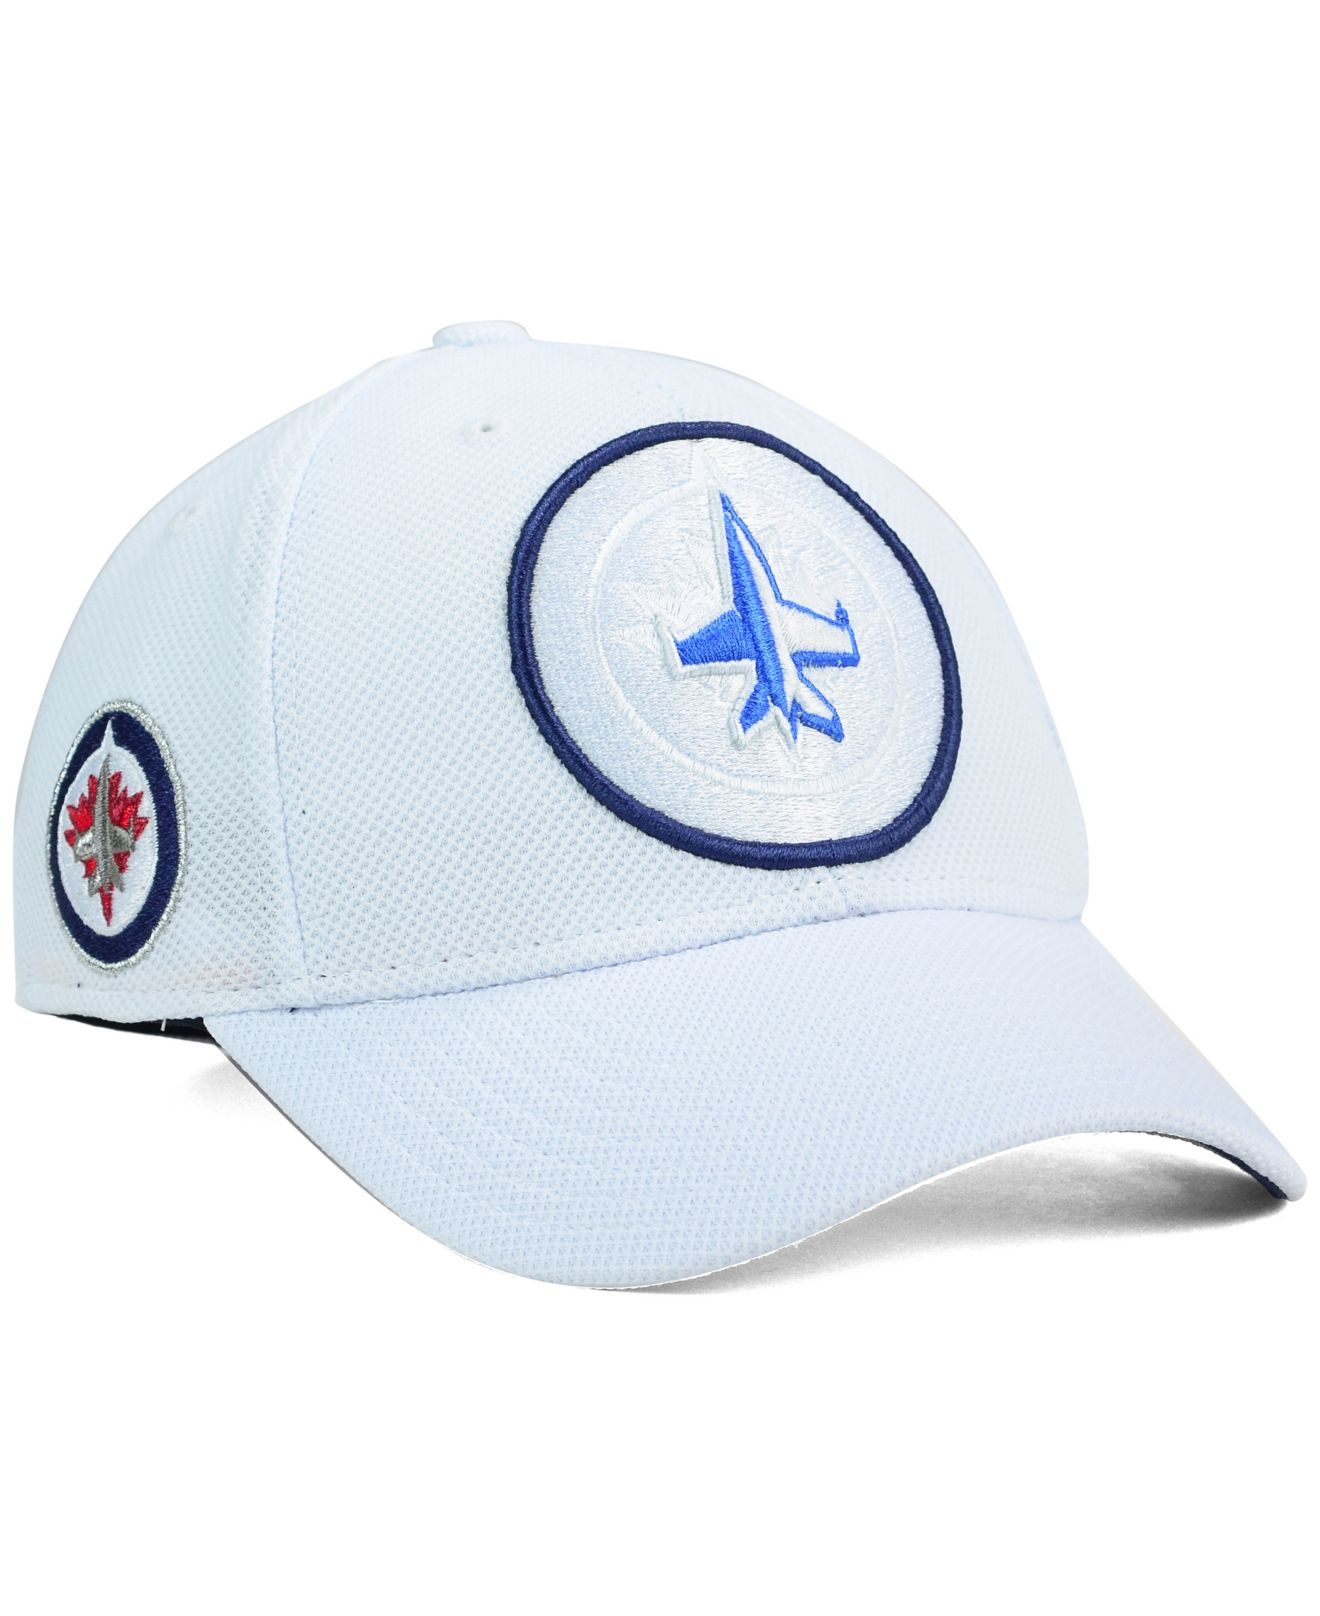 9adeb2075 Lyst - Reebok Winnipeg Jets 2nd Season Flex Cap in White for Men